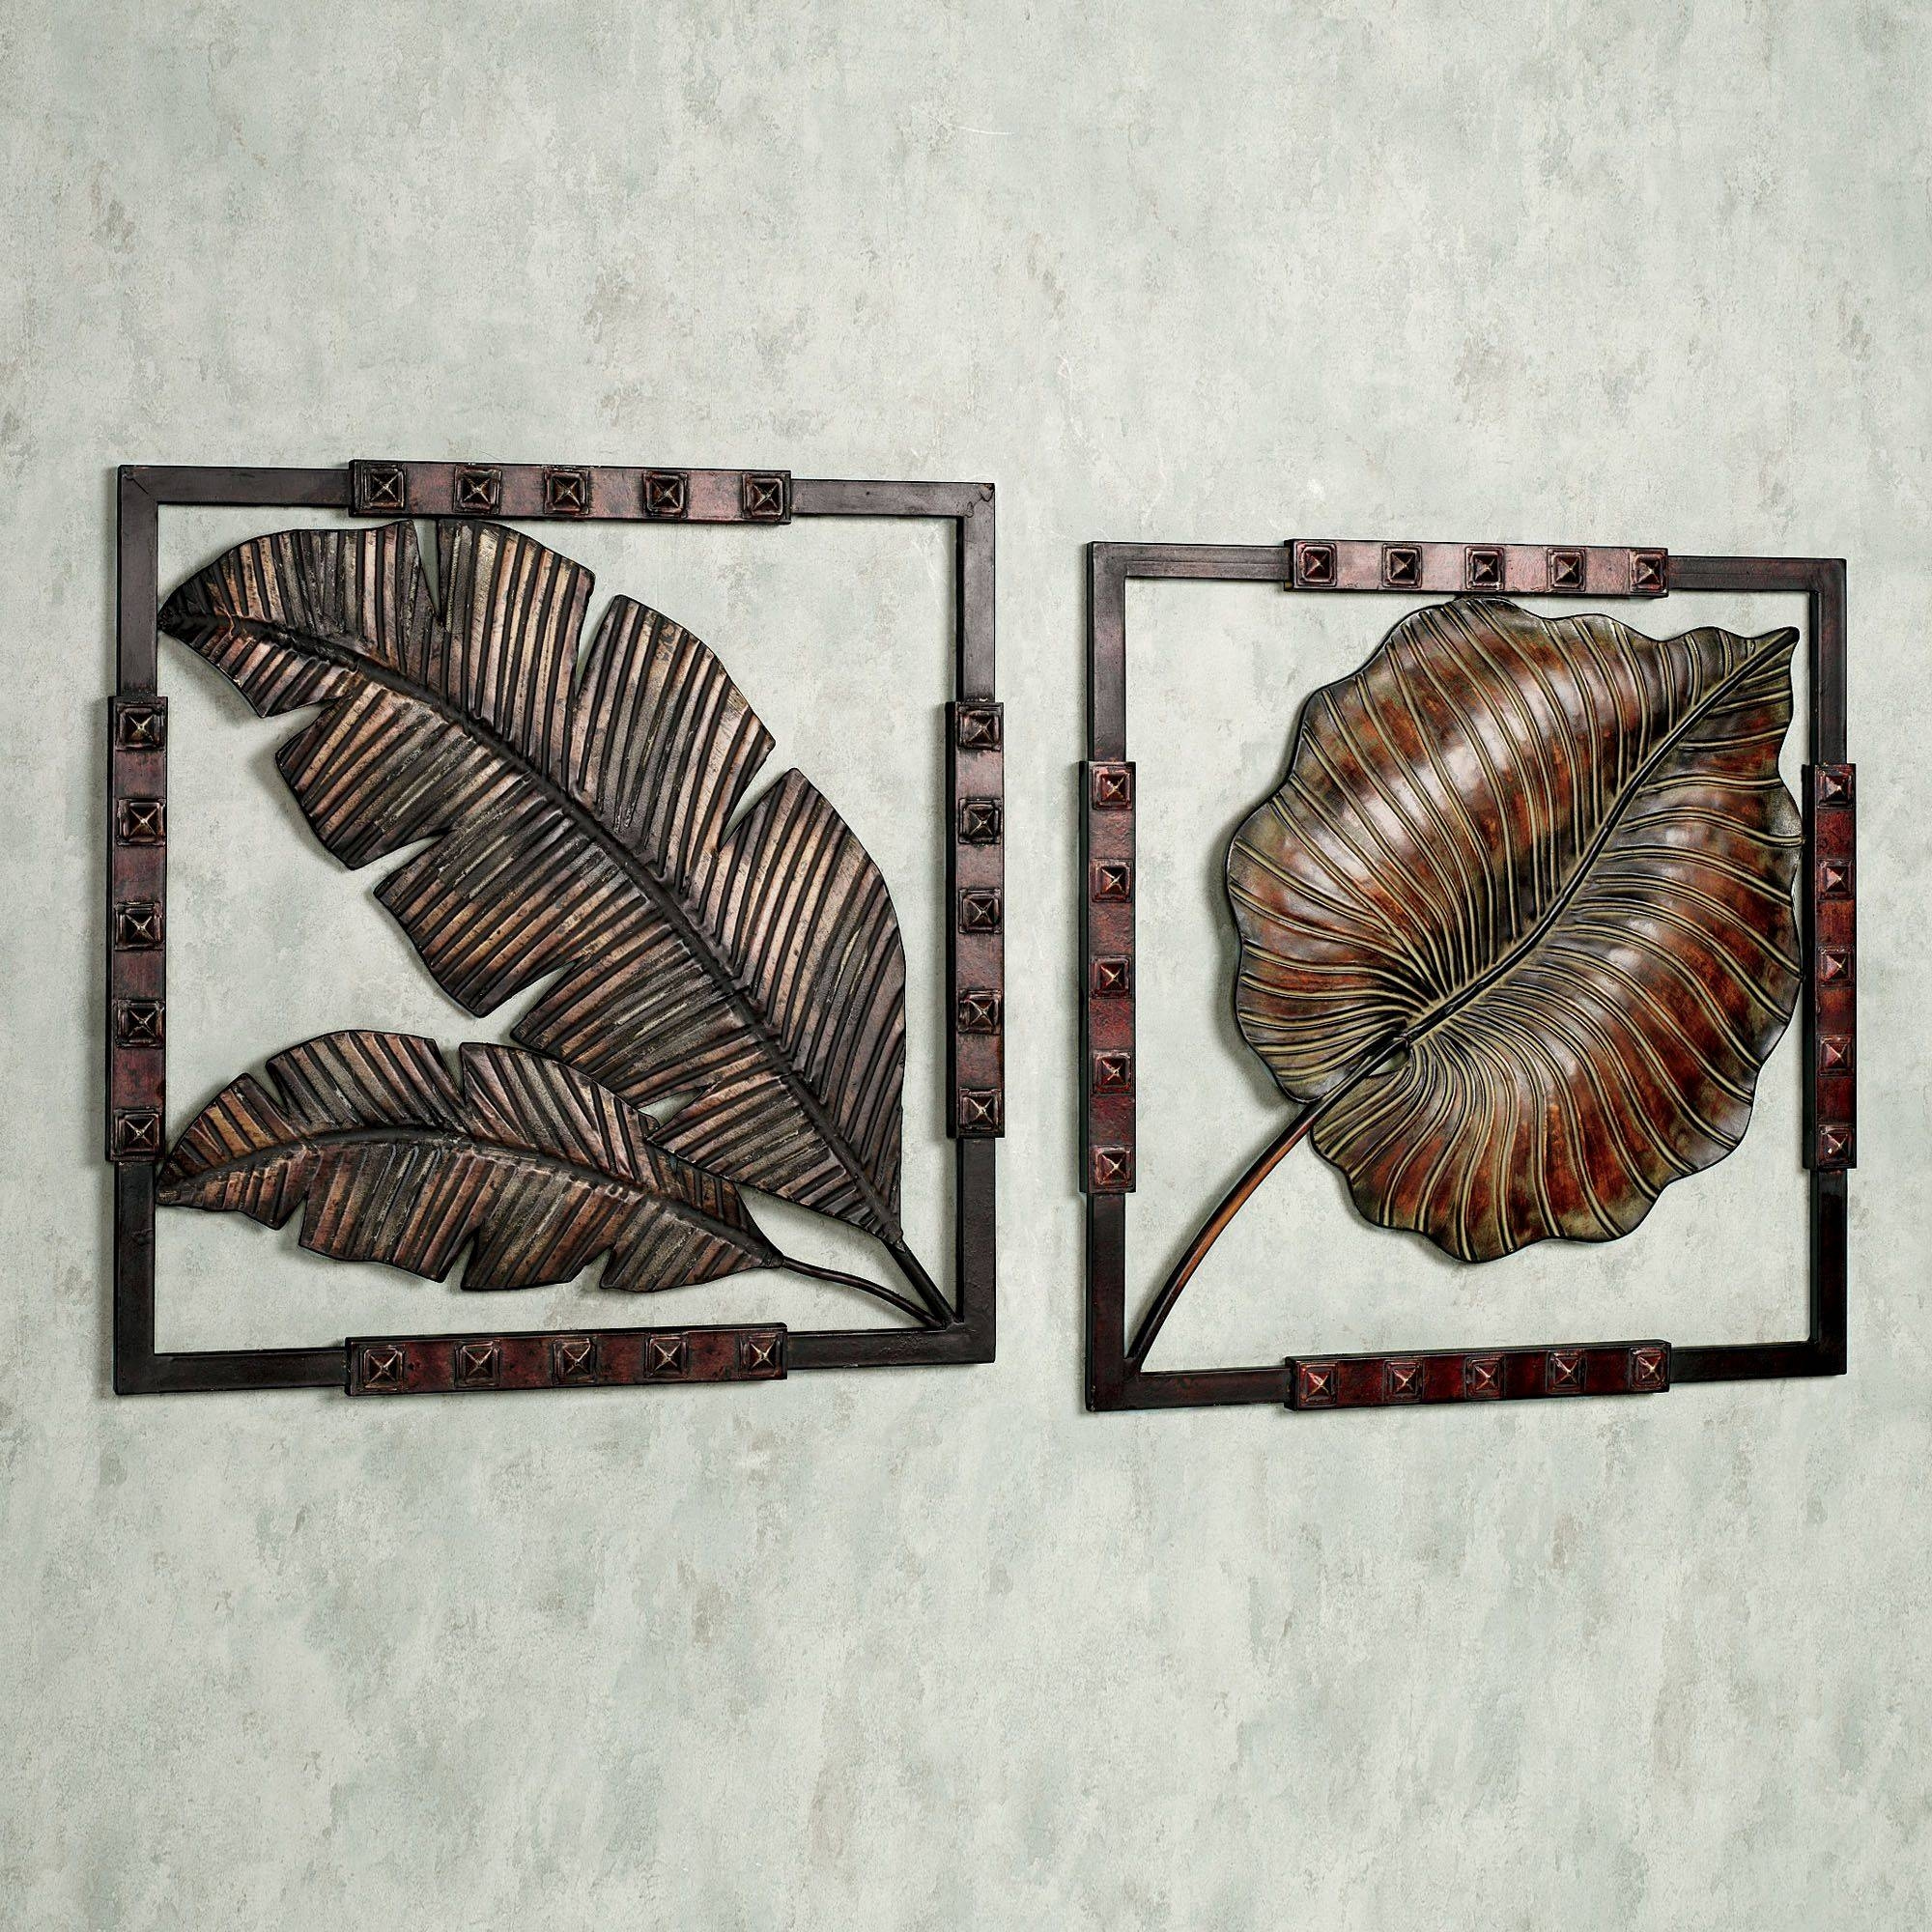 Cheerful Bronze Metal Wall Art Decor At Kirkland Of Dandelions In Current Kirkland Metal Wall Art (View 12 of 20)